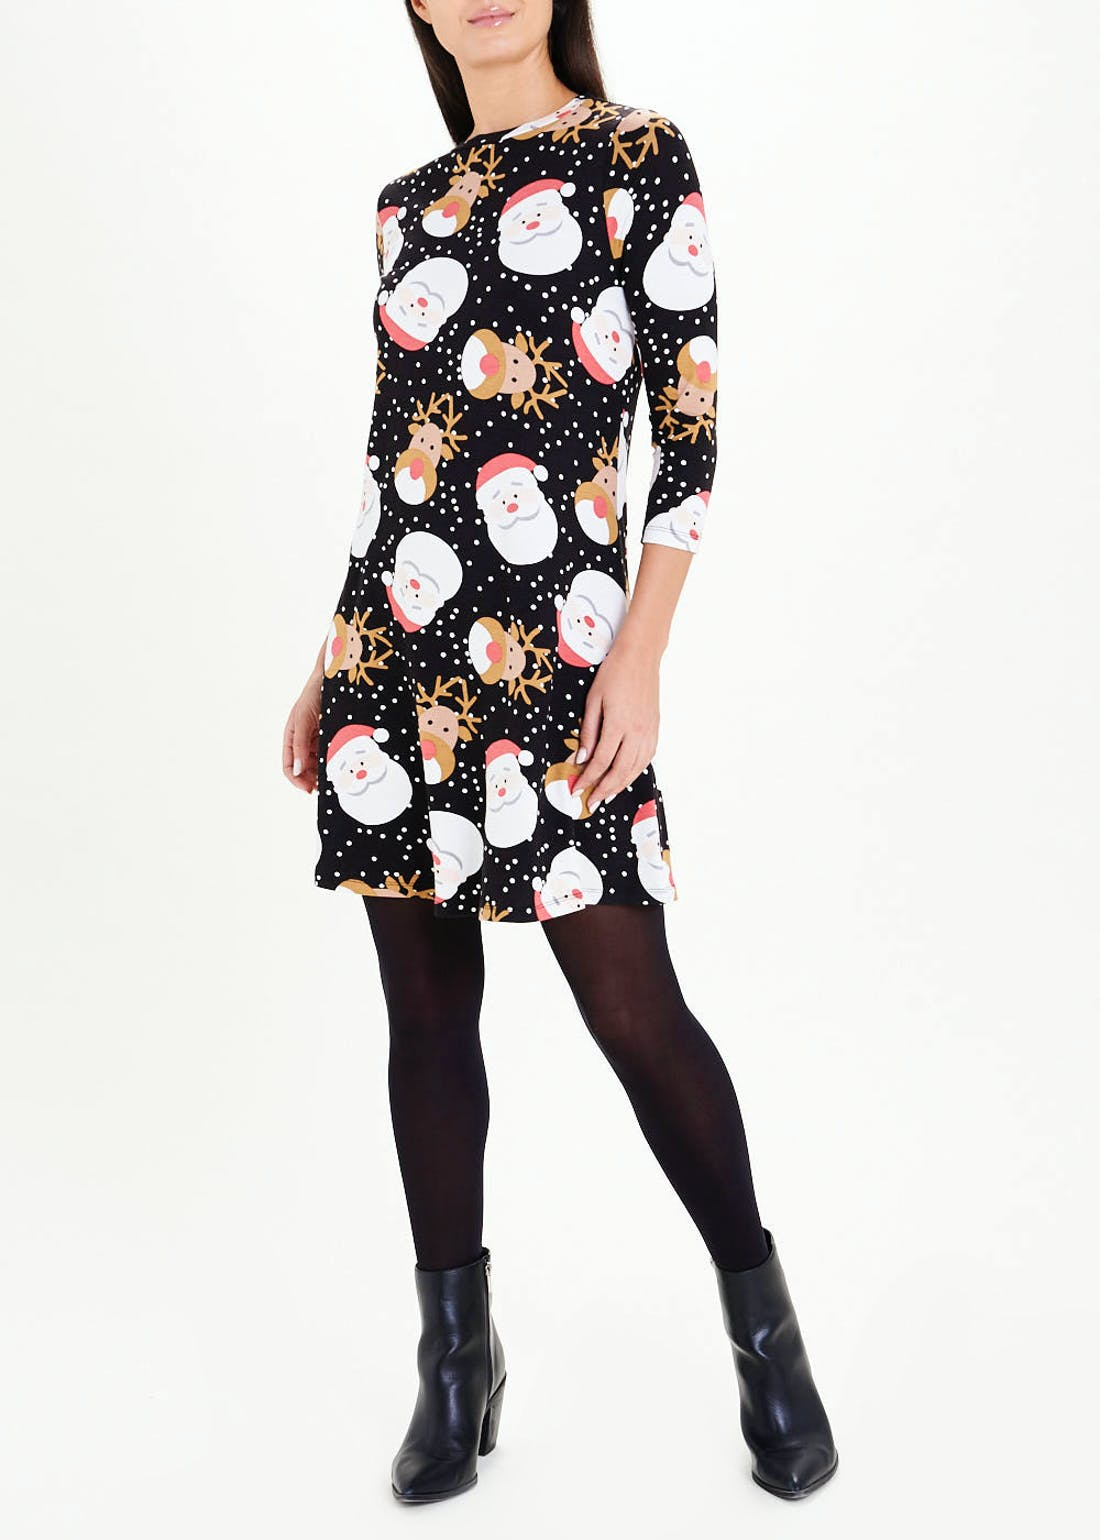 Black 3/4 Sleeve Christmas Jersey Swing Dress